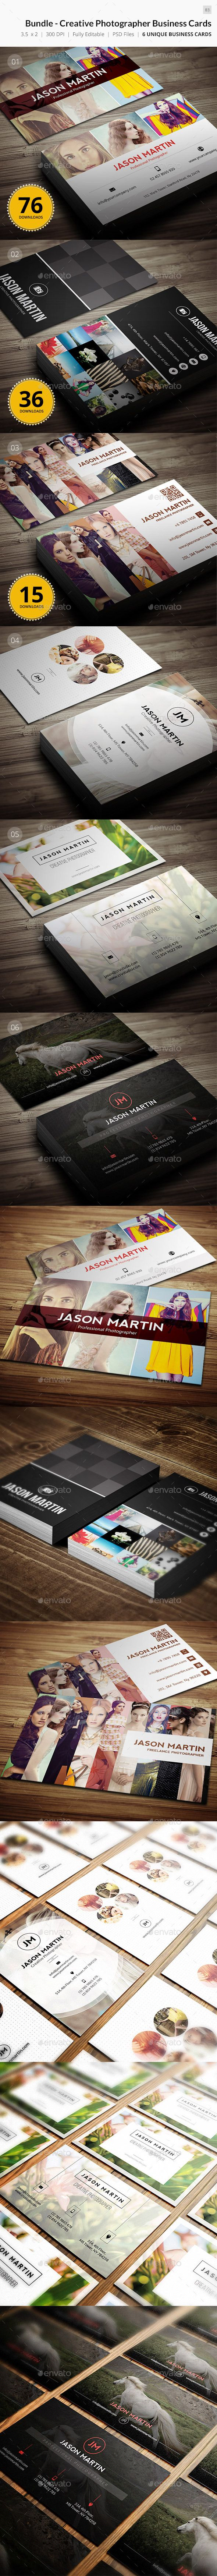 29 best photographer business card ideas images on pinterest